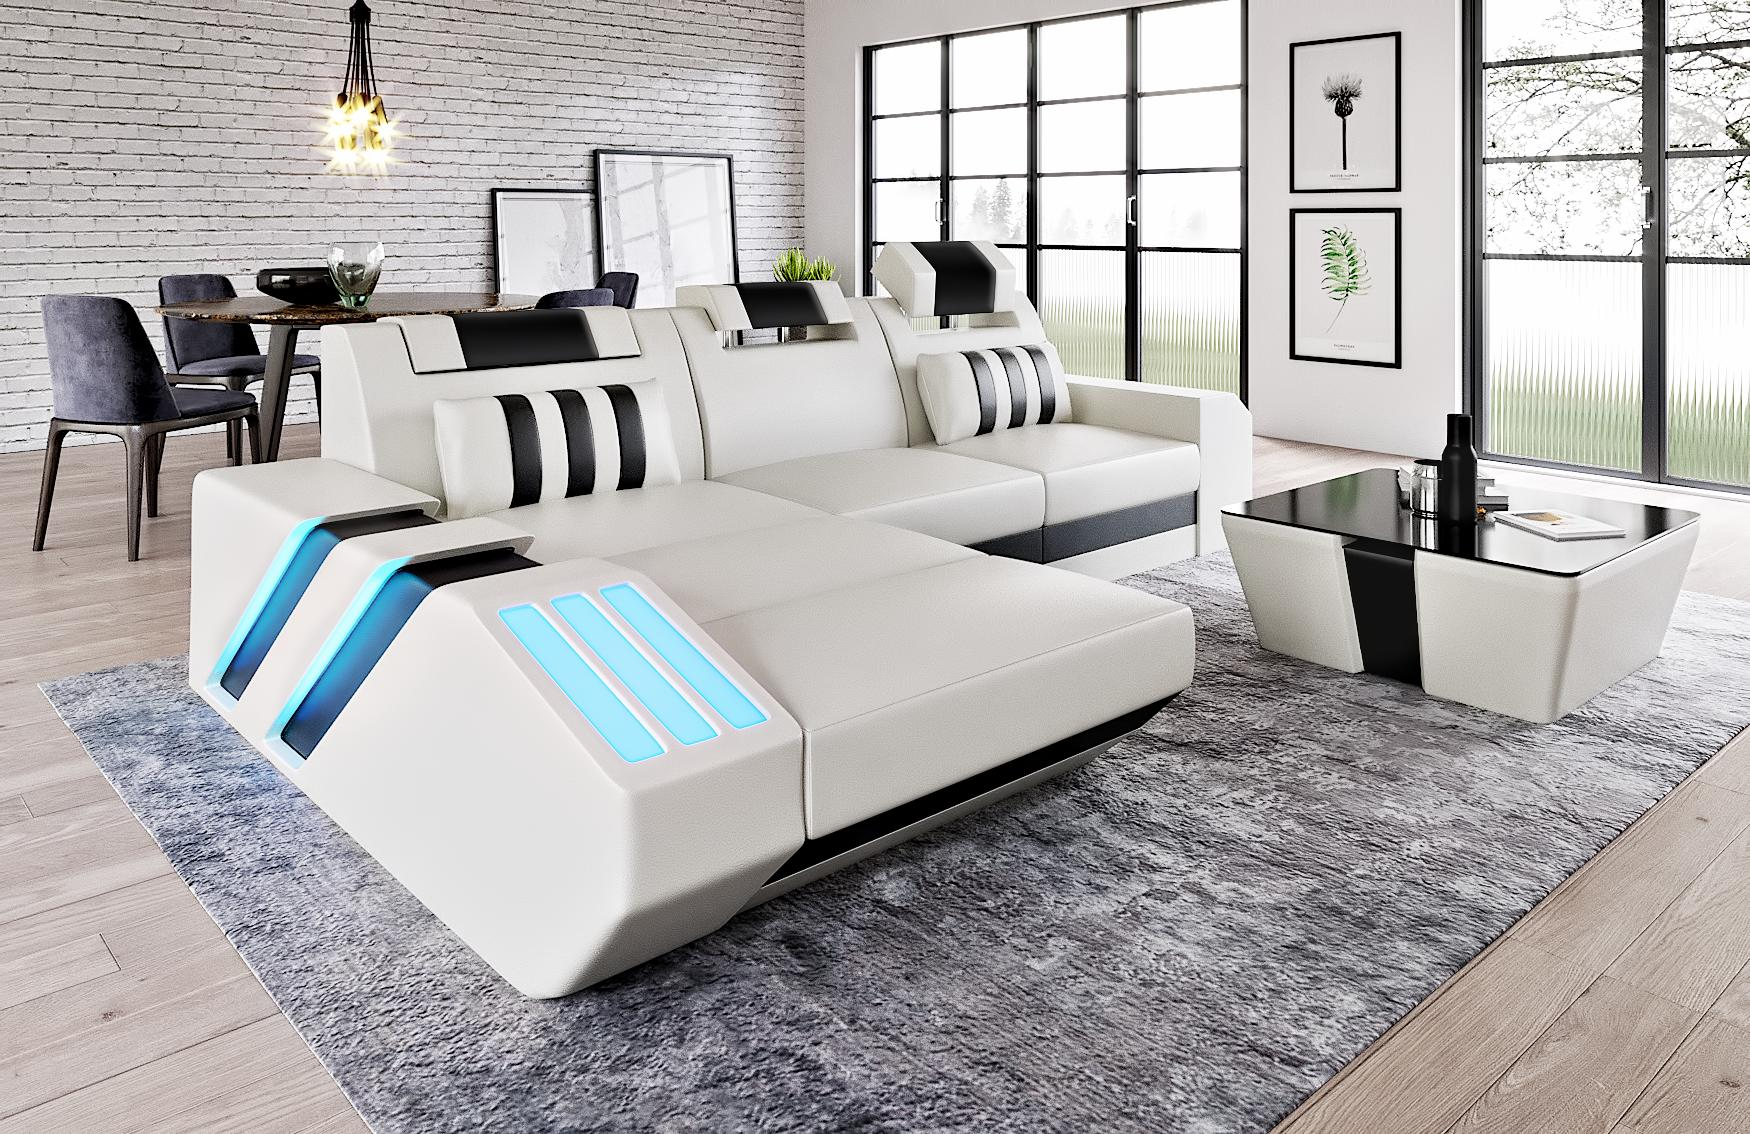 sofa zweite wahl simple couch mit sesseln with sofa zweite wahl cordoba with sofa zweite wahl. Black Bedroom Furniture Sets. Home Design Ideas